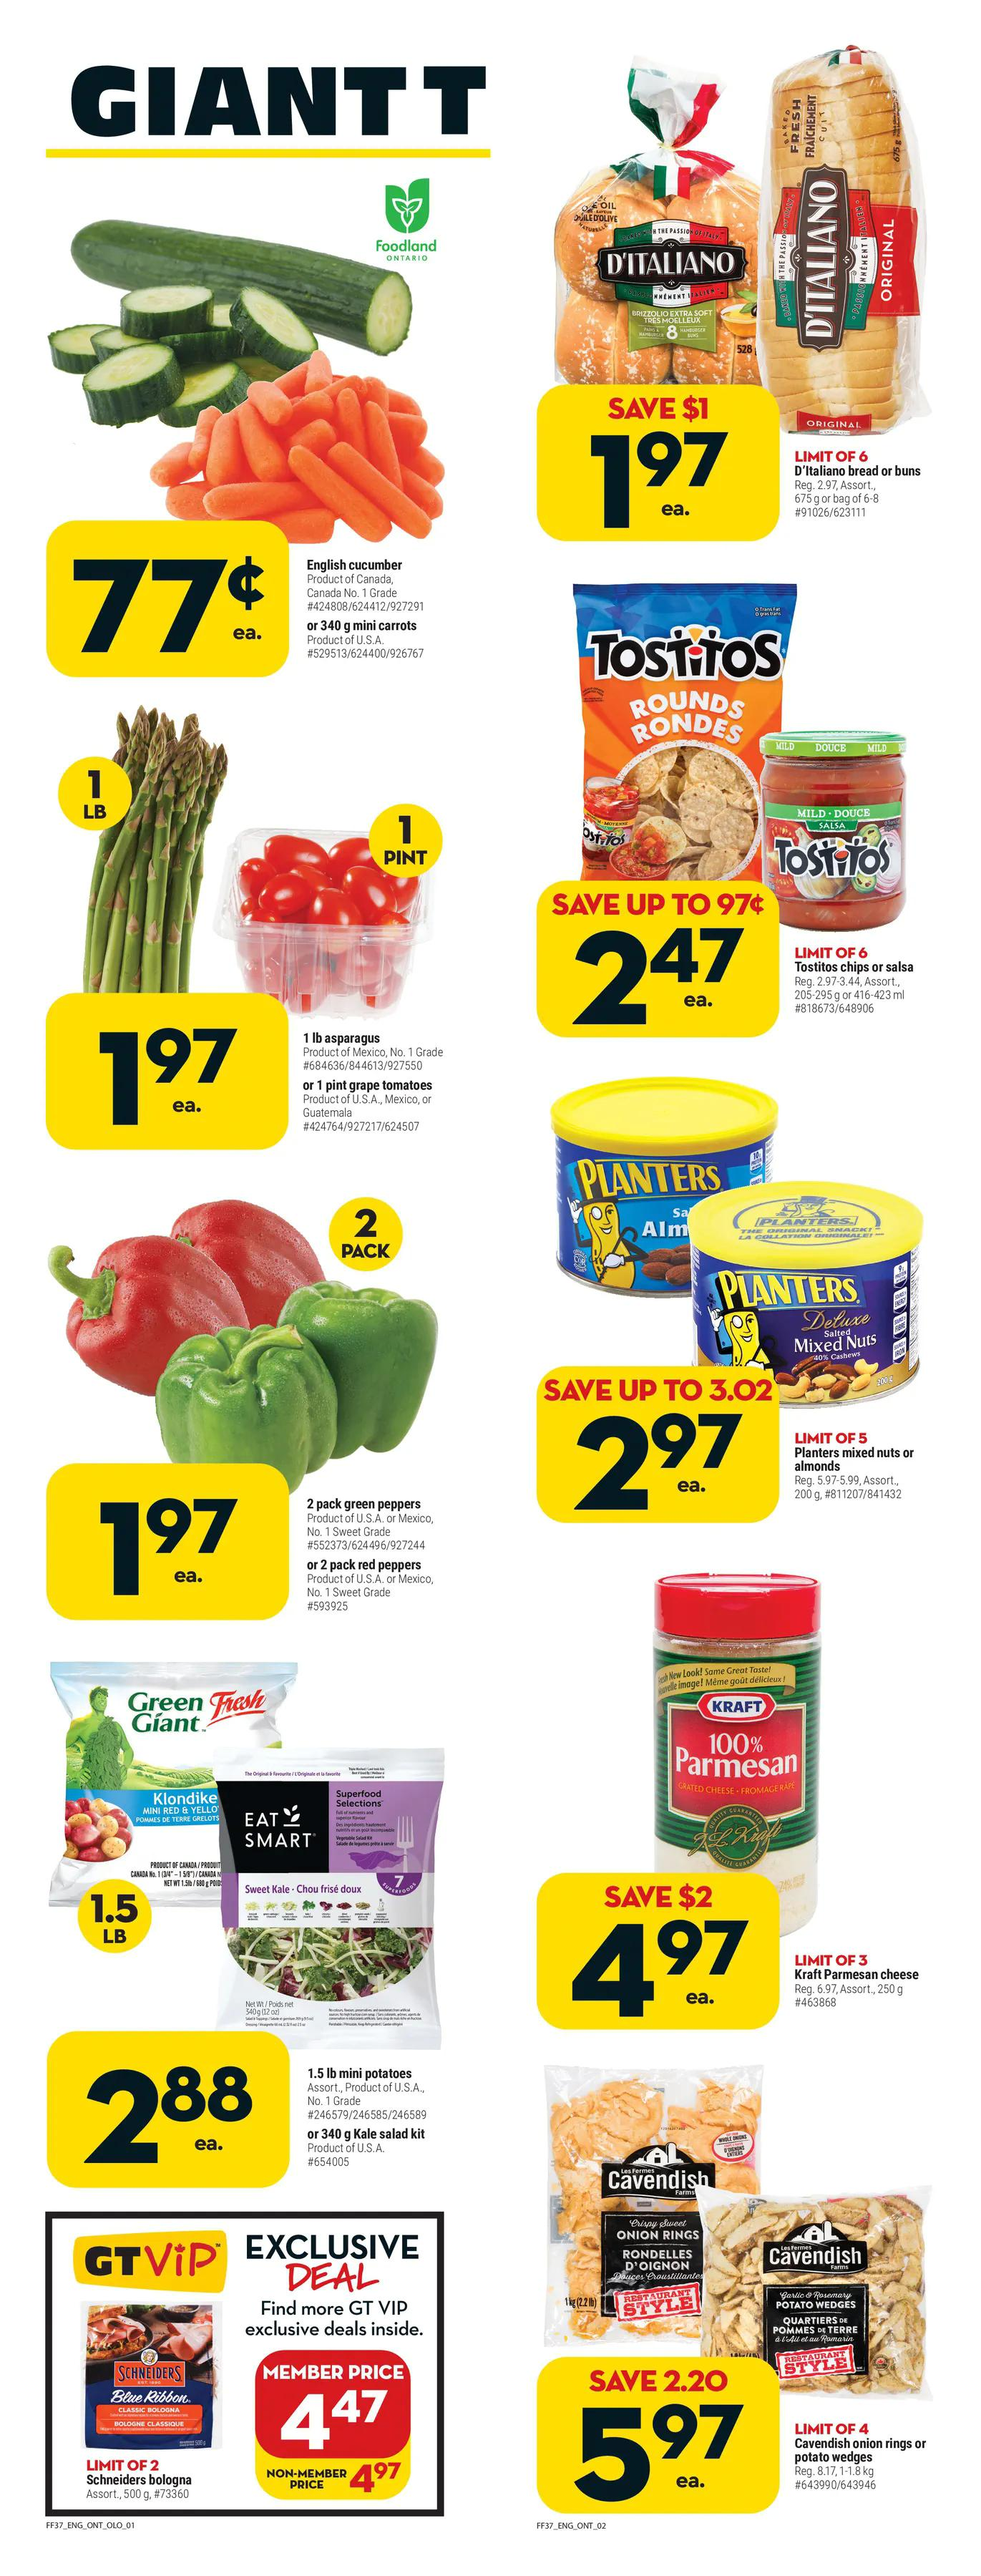 Giant Tiger - Weekly Flyer Specials - Page 1